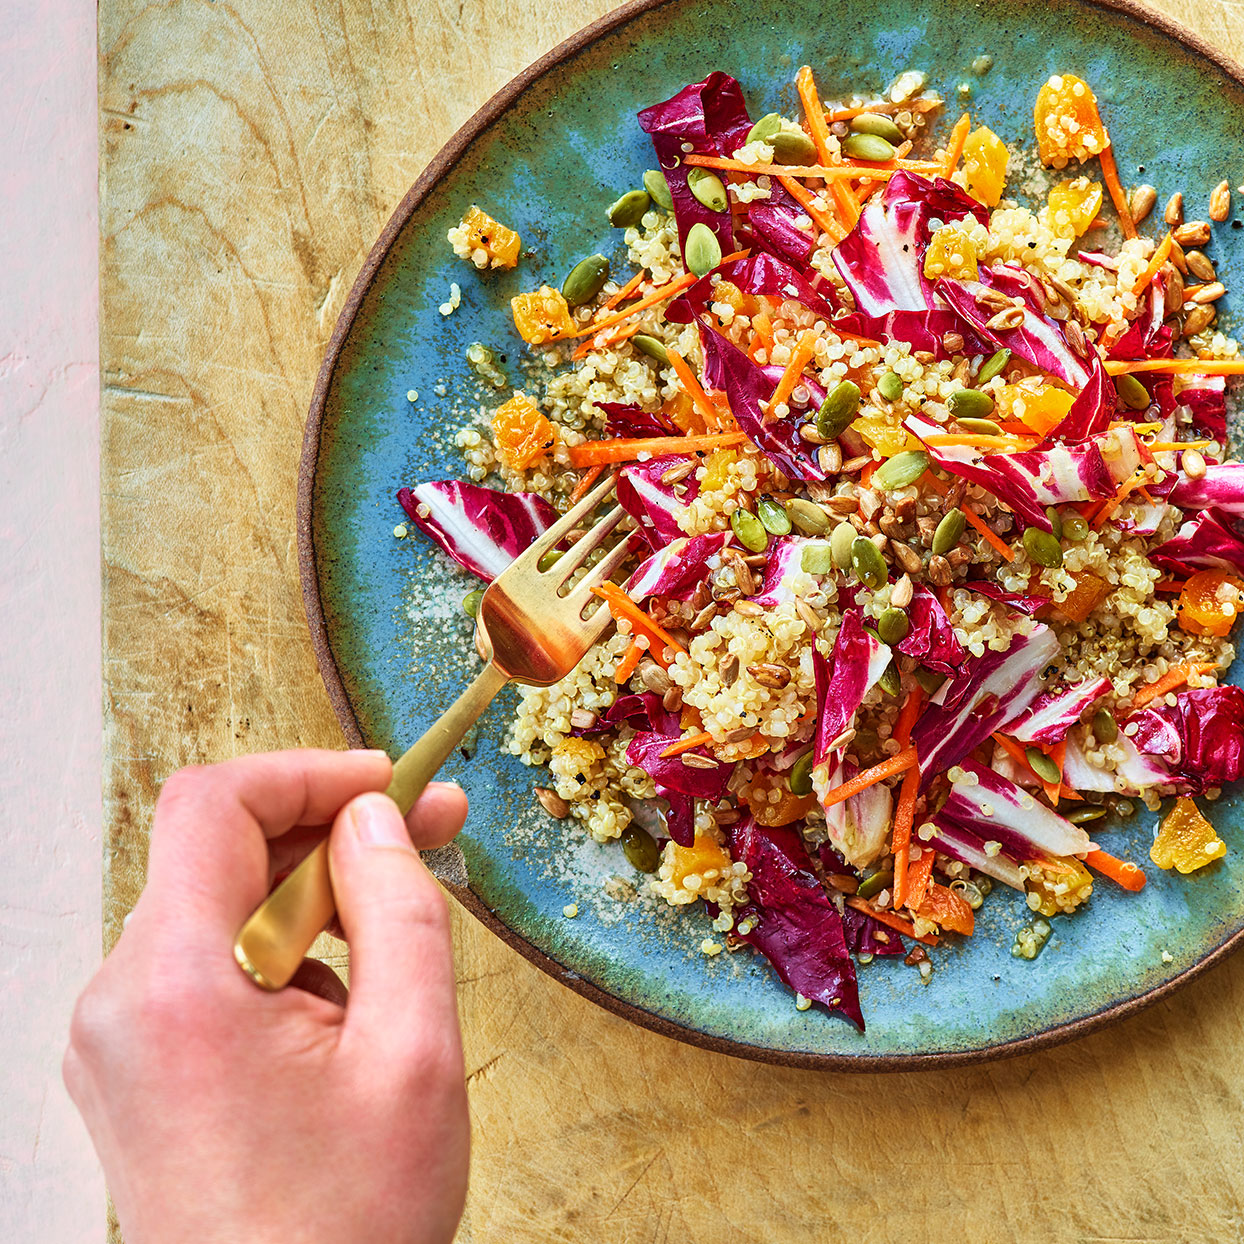 Quinoa Salad with Radicchio, Carrots & Dried Apricots